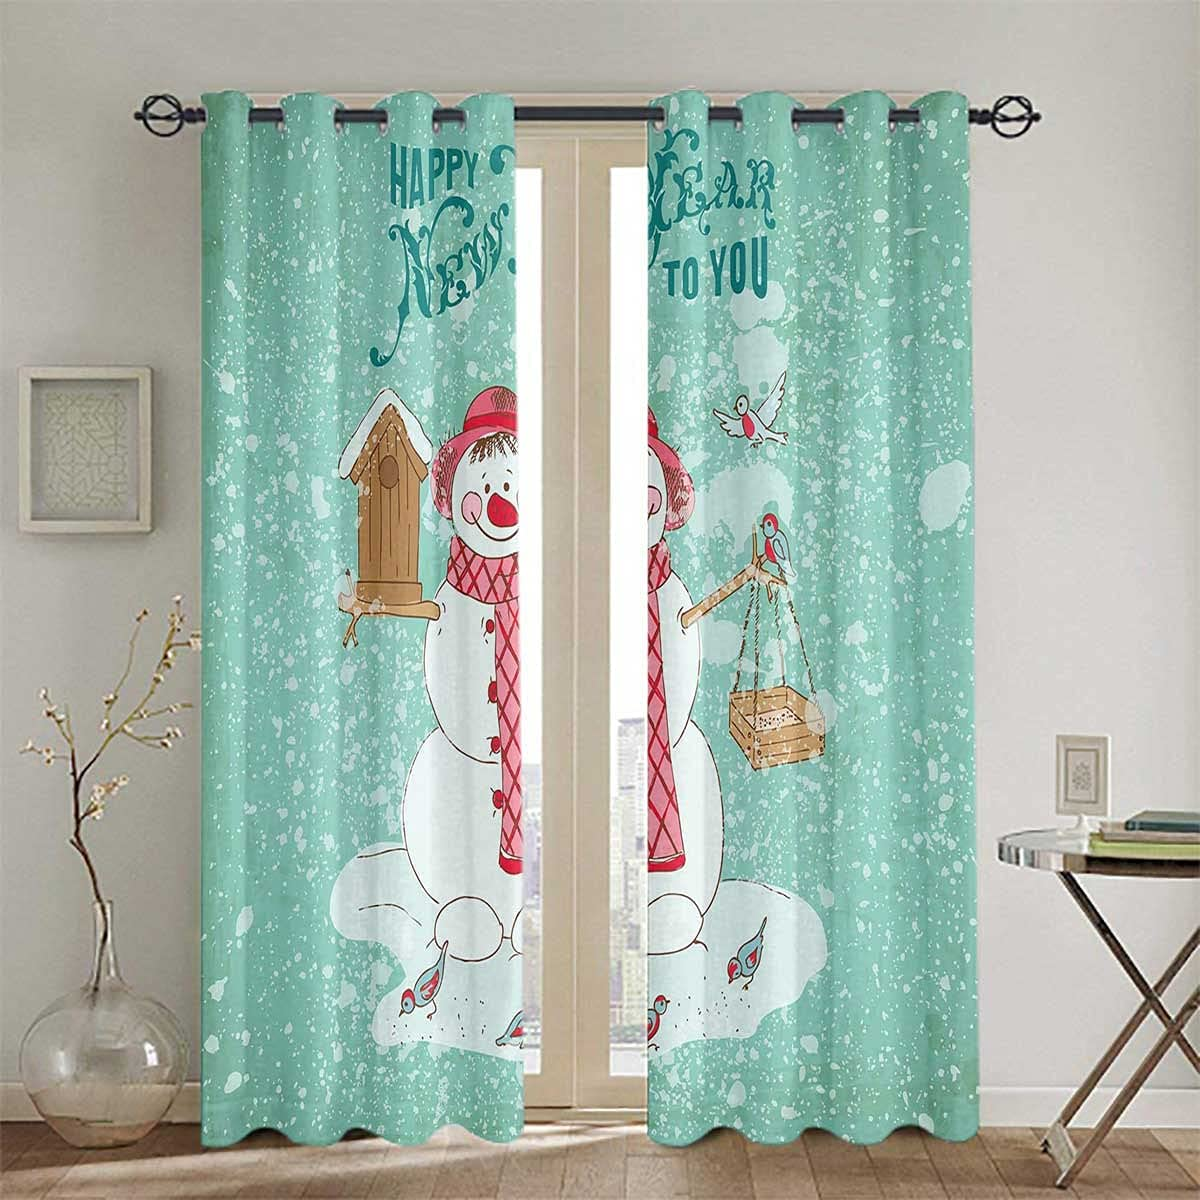 Kitchen Curtains Cafe Net Curtain Window Decor Max 66% OFF Happy service Year Bl New